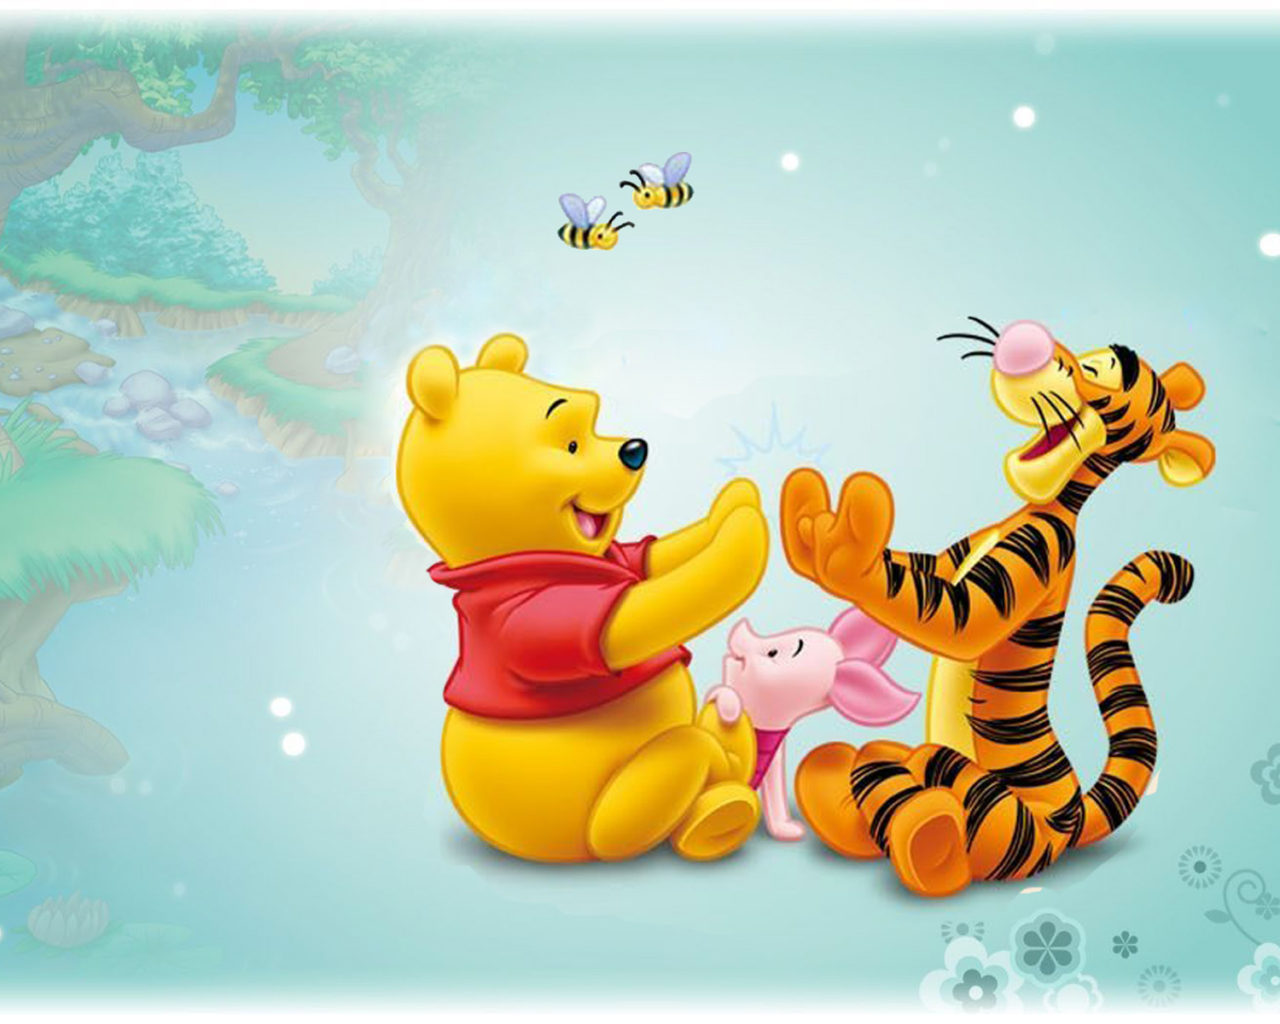 Wallpaper Iphone 5 Cartoon Tigger Piglet And Winnie The Pooh Baby Cartoon Disney Hd